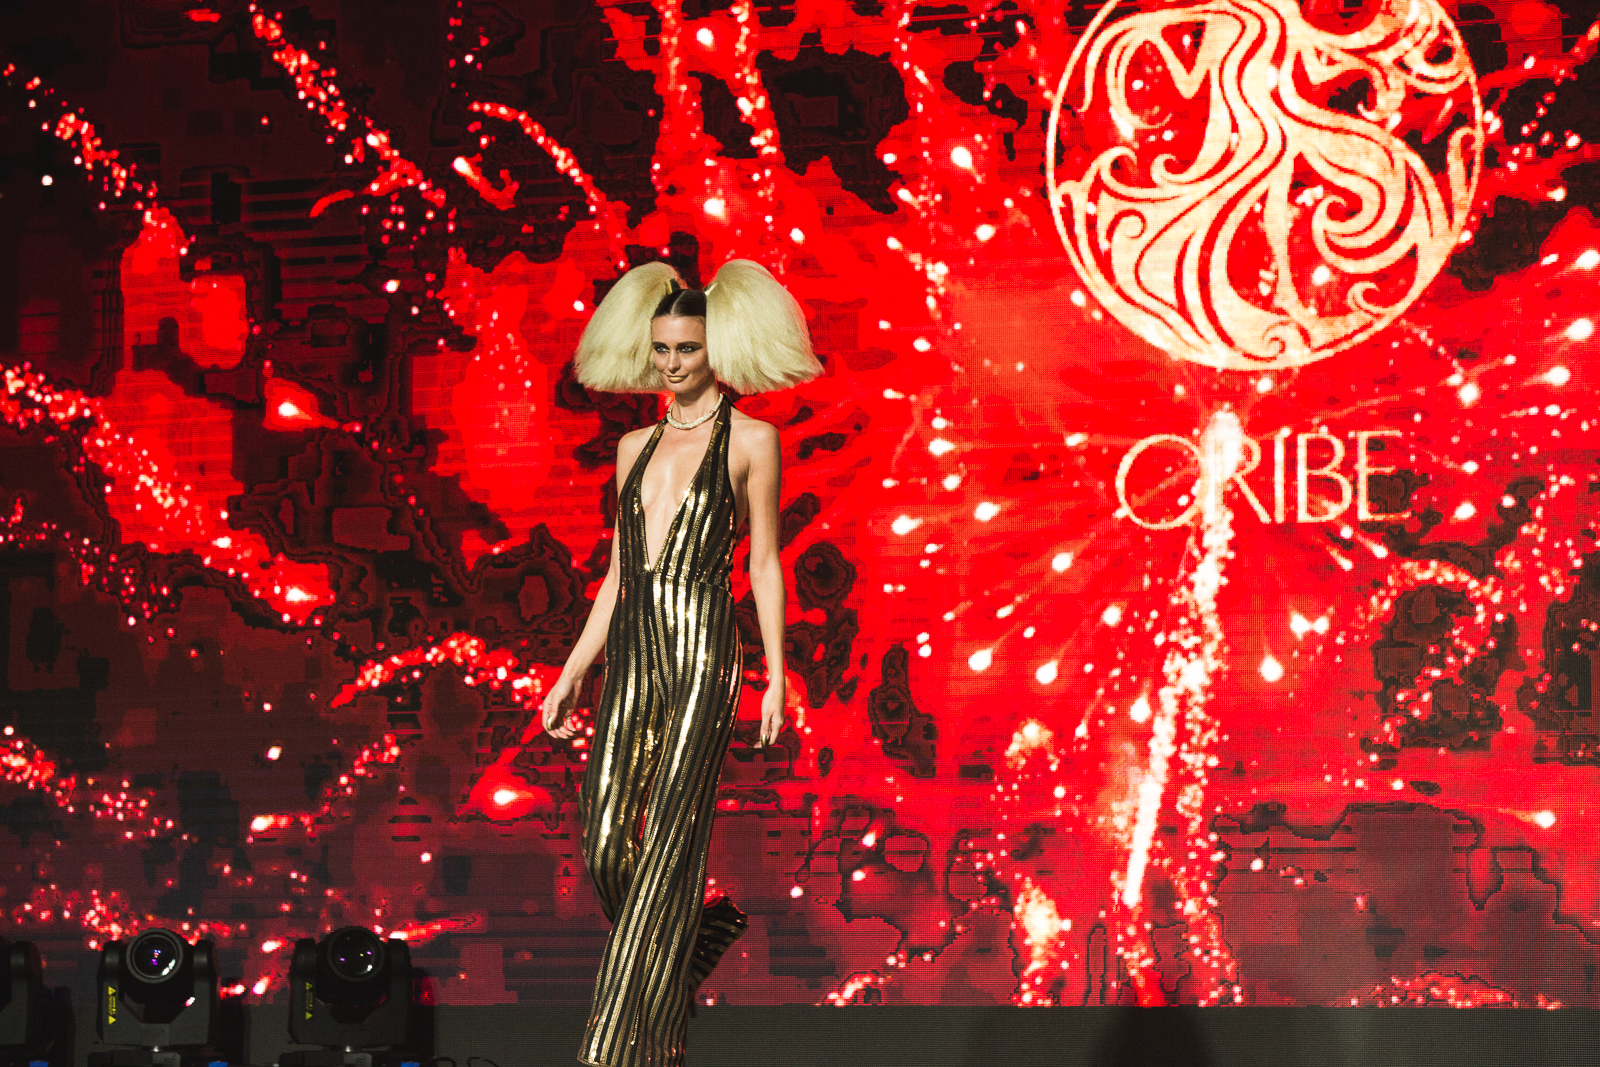 One of the looks that Kien Hoang created for The Blonds S/S 2106 show.